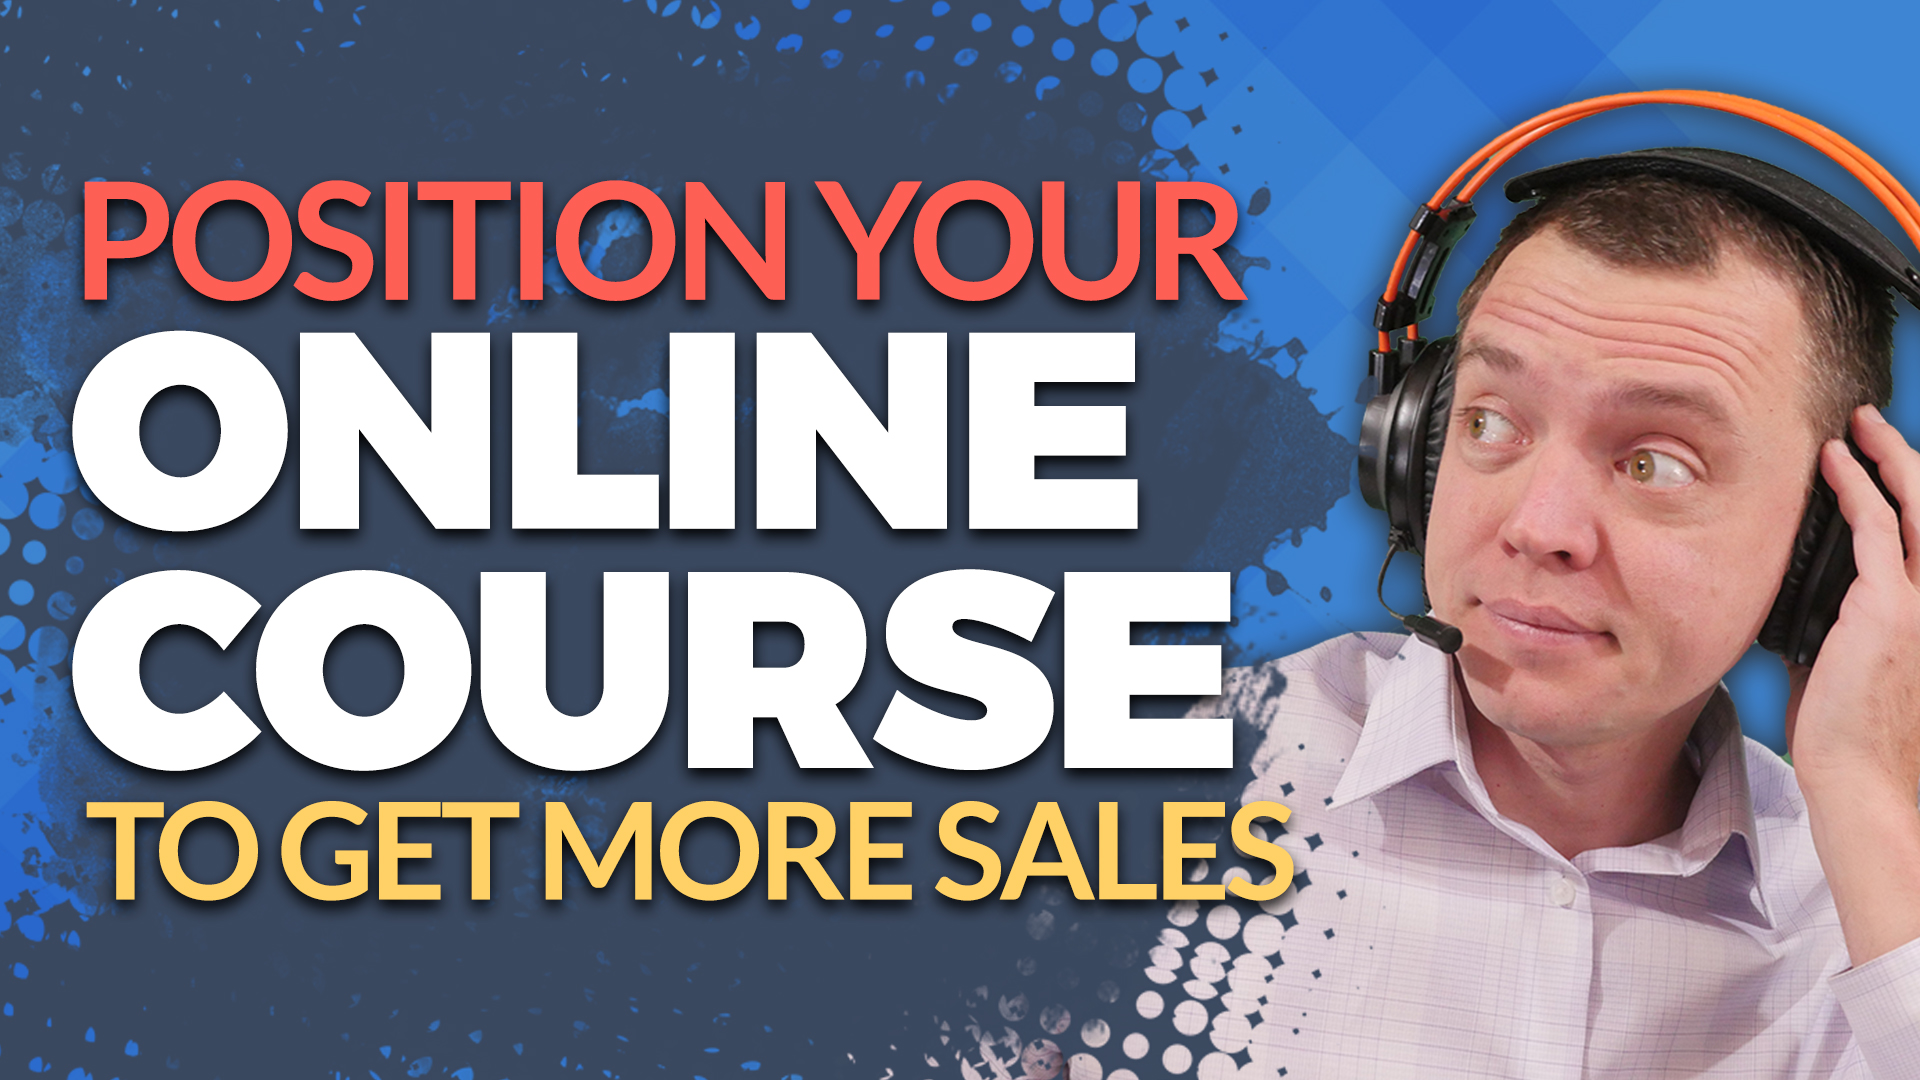 How to Position Your Online Course to Get More Sales and Dominate an Industry